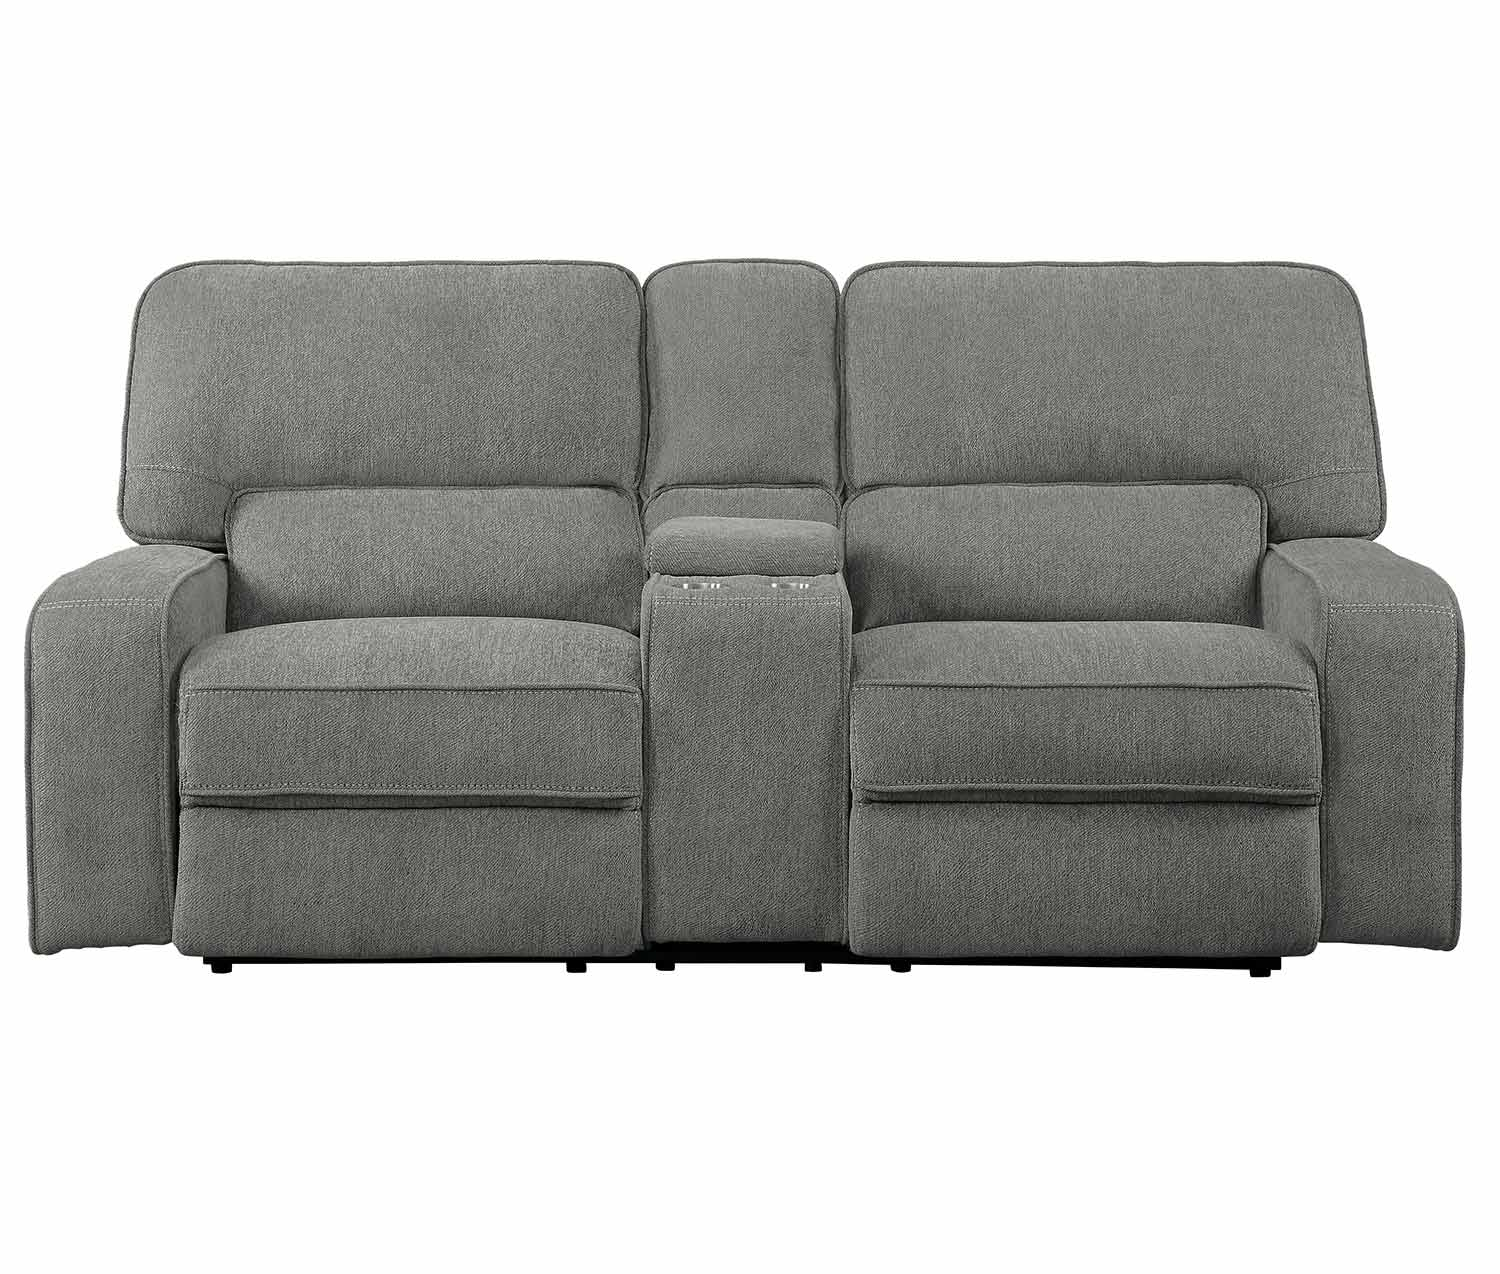 Homelegance Borneo Double Reclining Love Seat with Center Console - Mocha